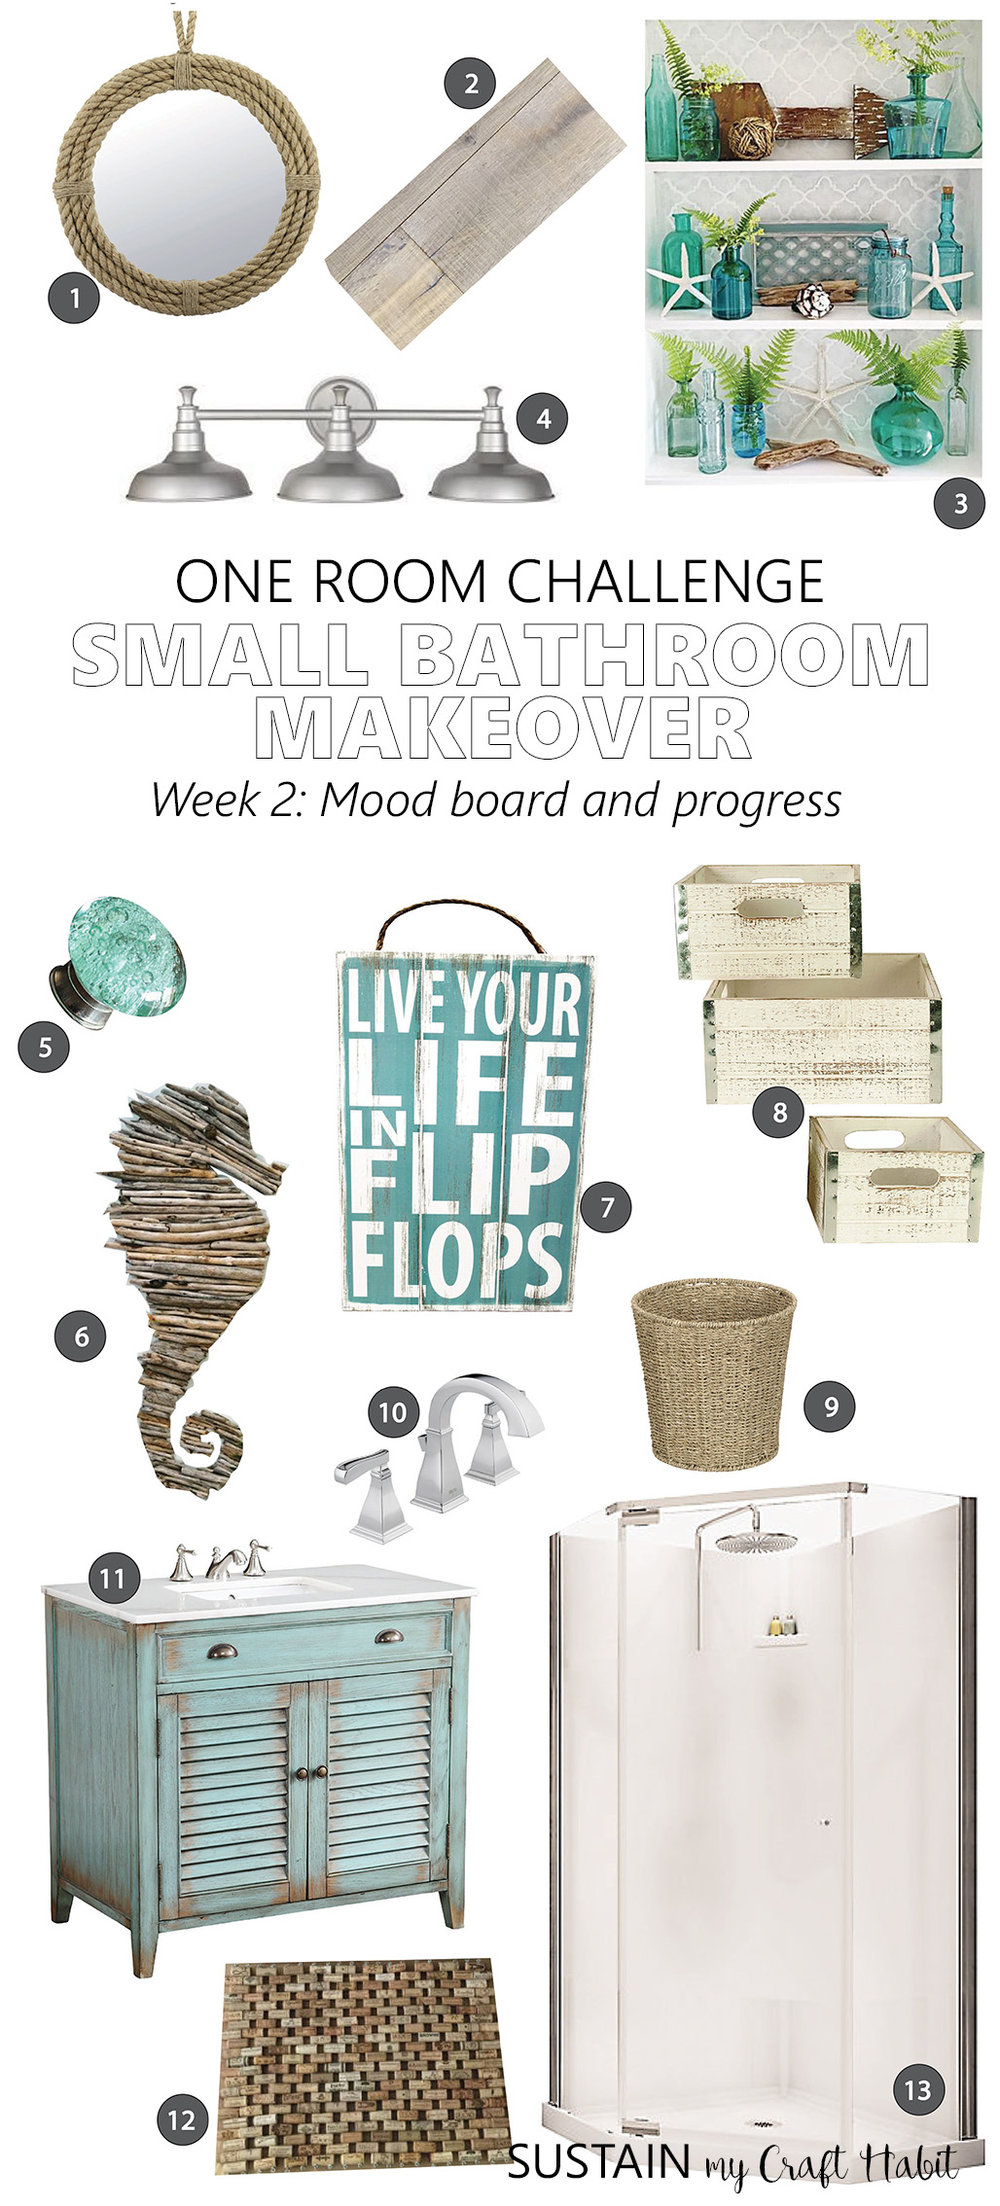 One Room Challenge | Spring 2017 Edition | Small Bathroom Remodel – Week 2